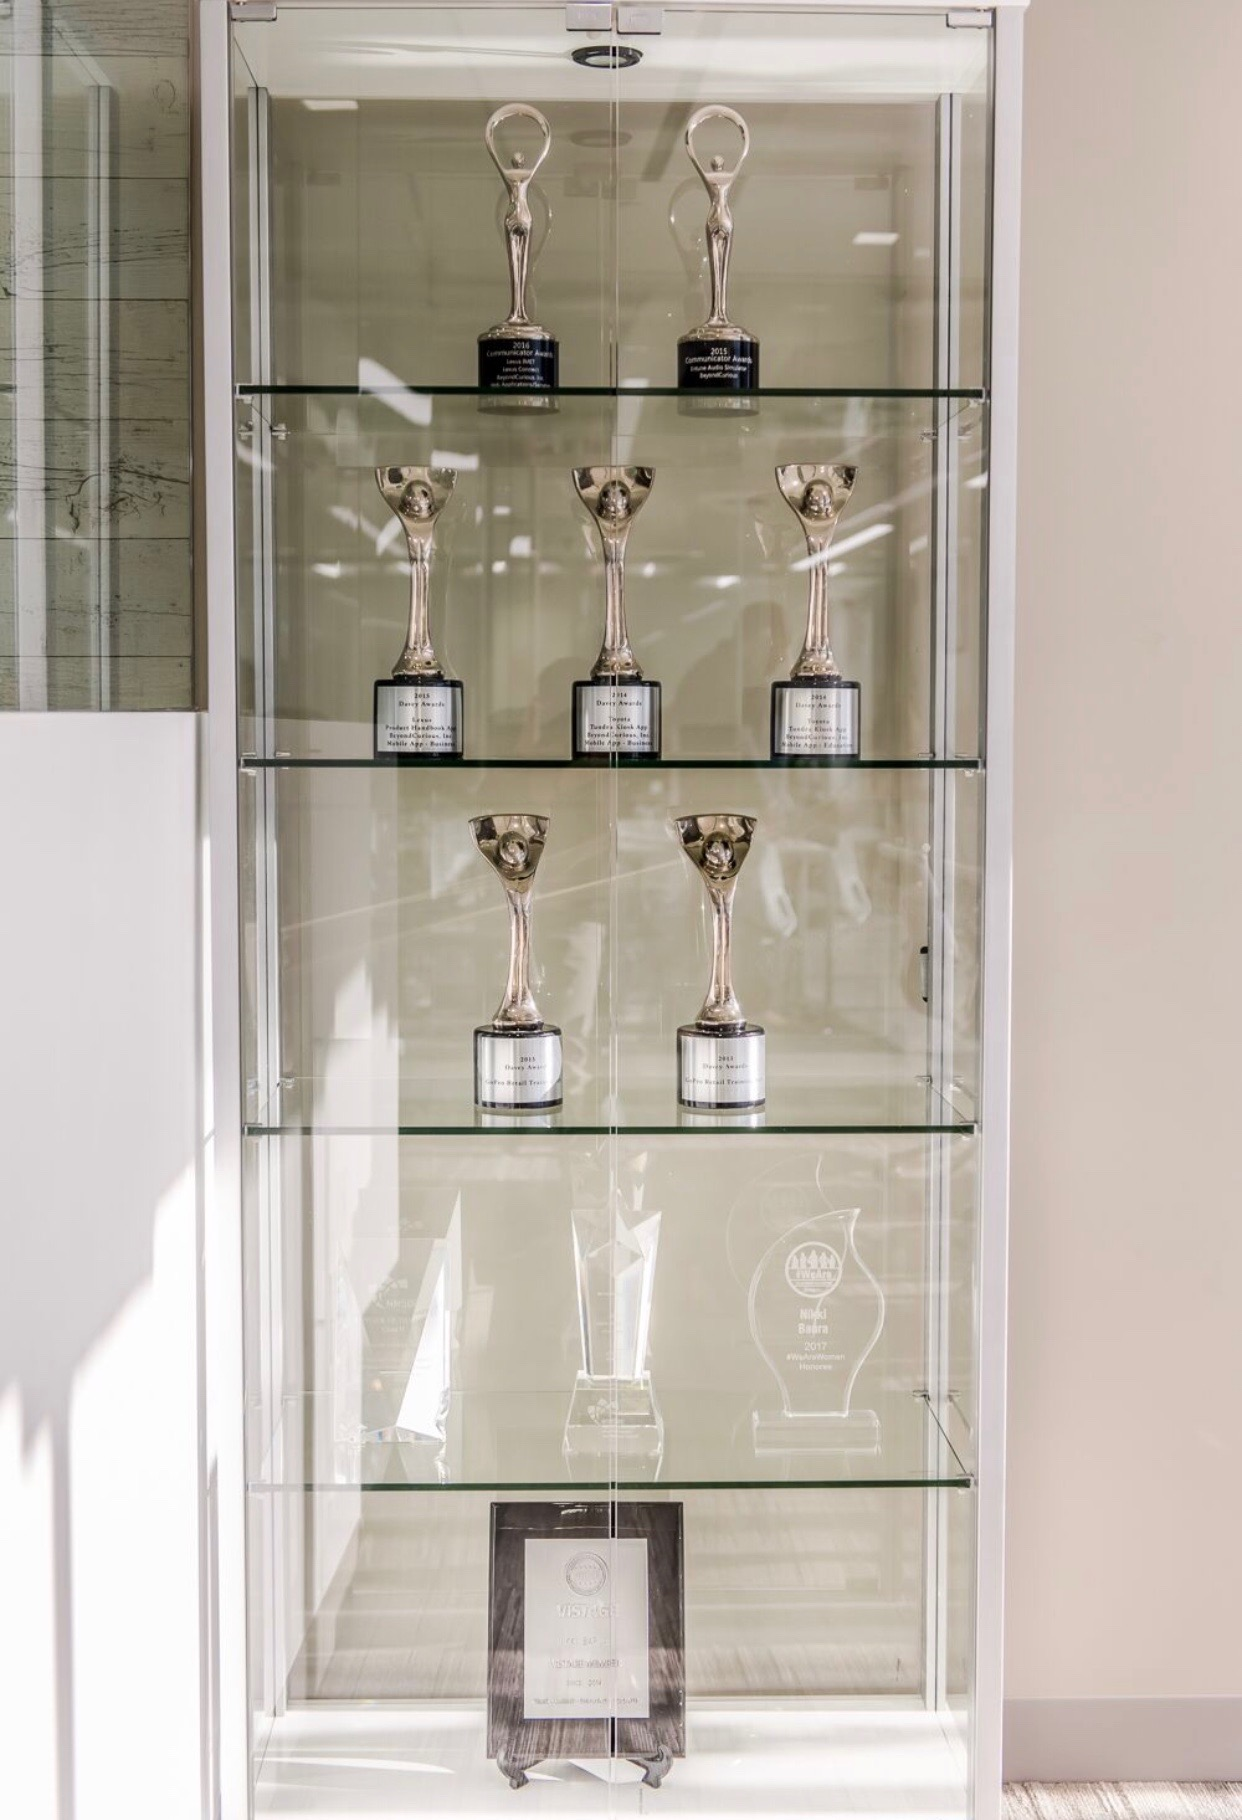 An organized trophy display case for a local small business.